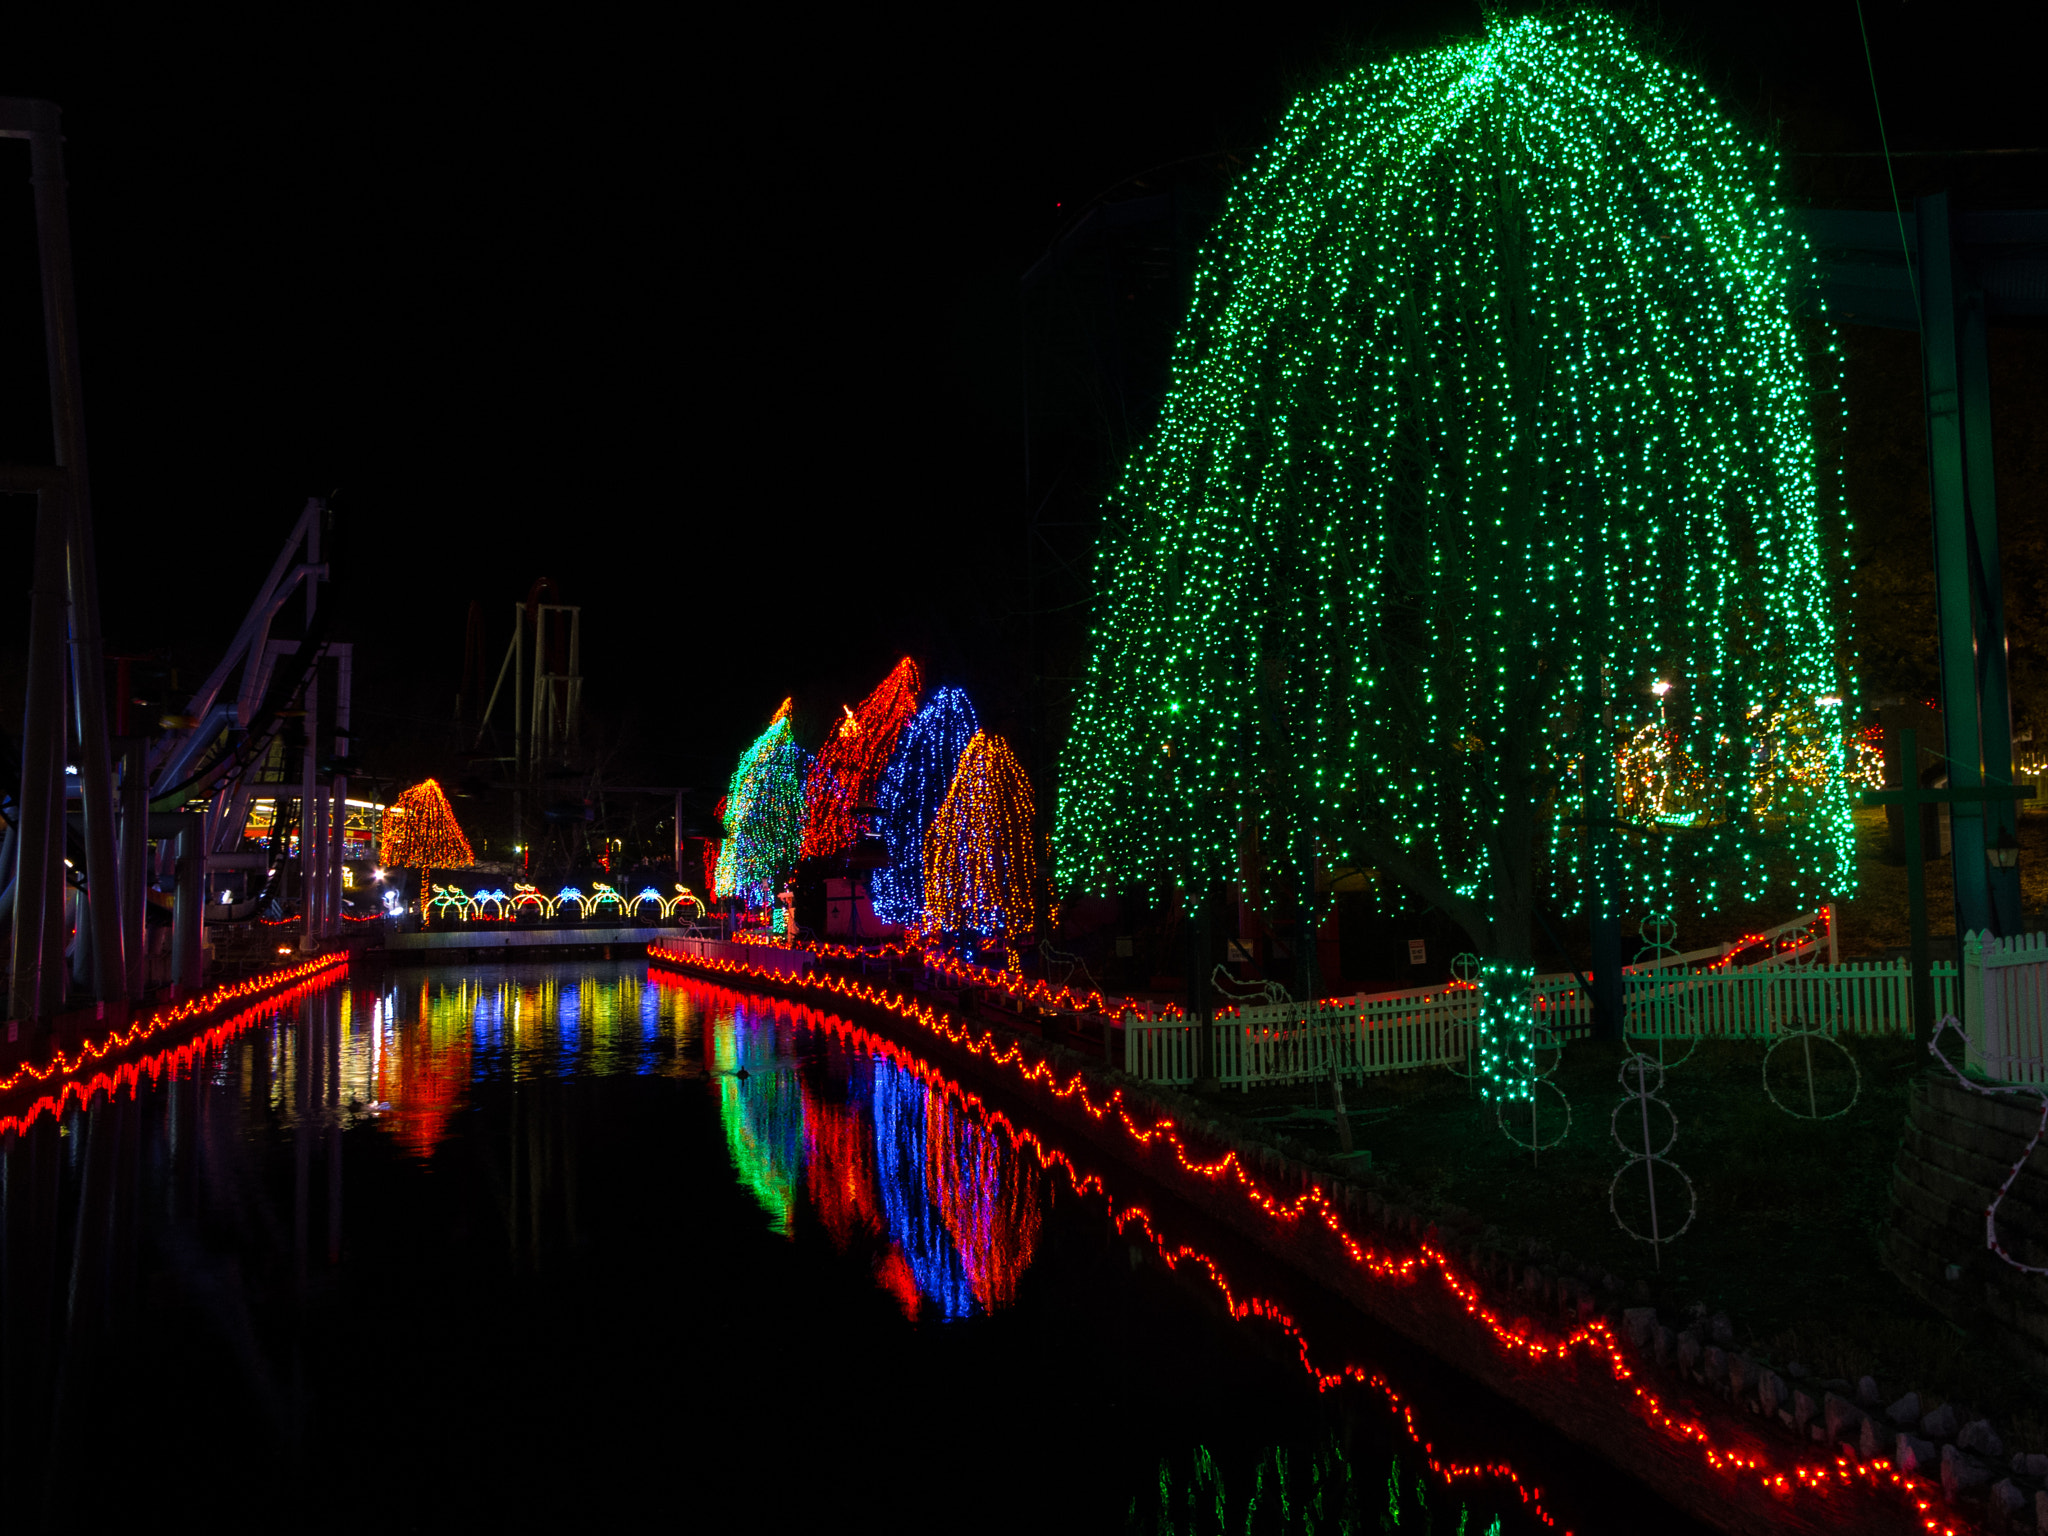 Holiday lights on trees reflected in a narrow stream.